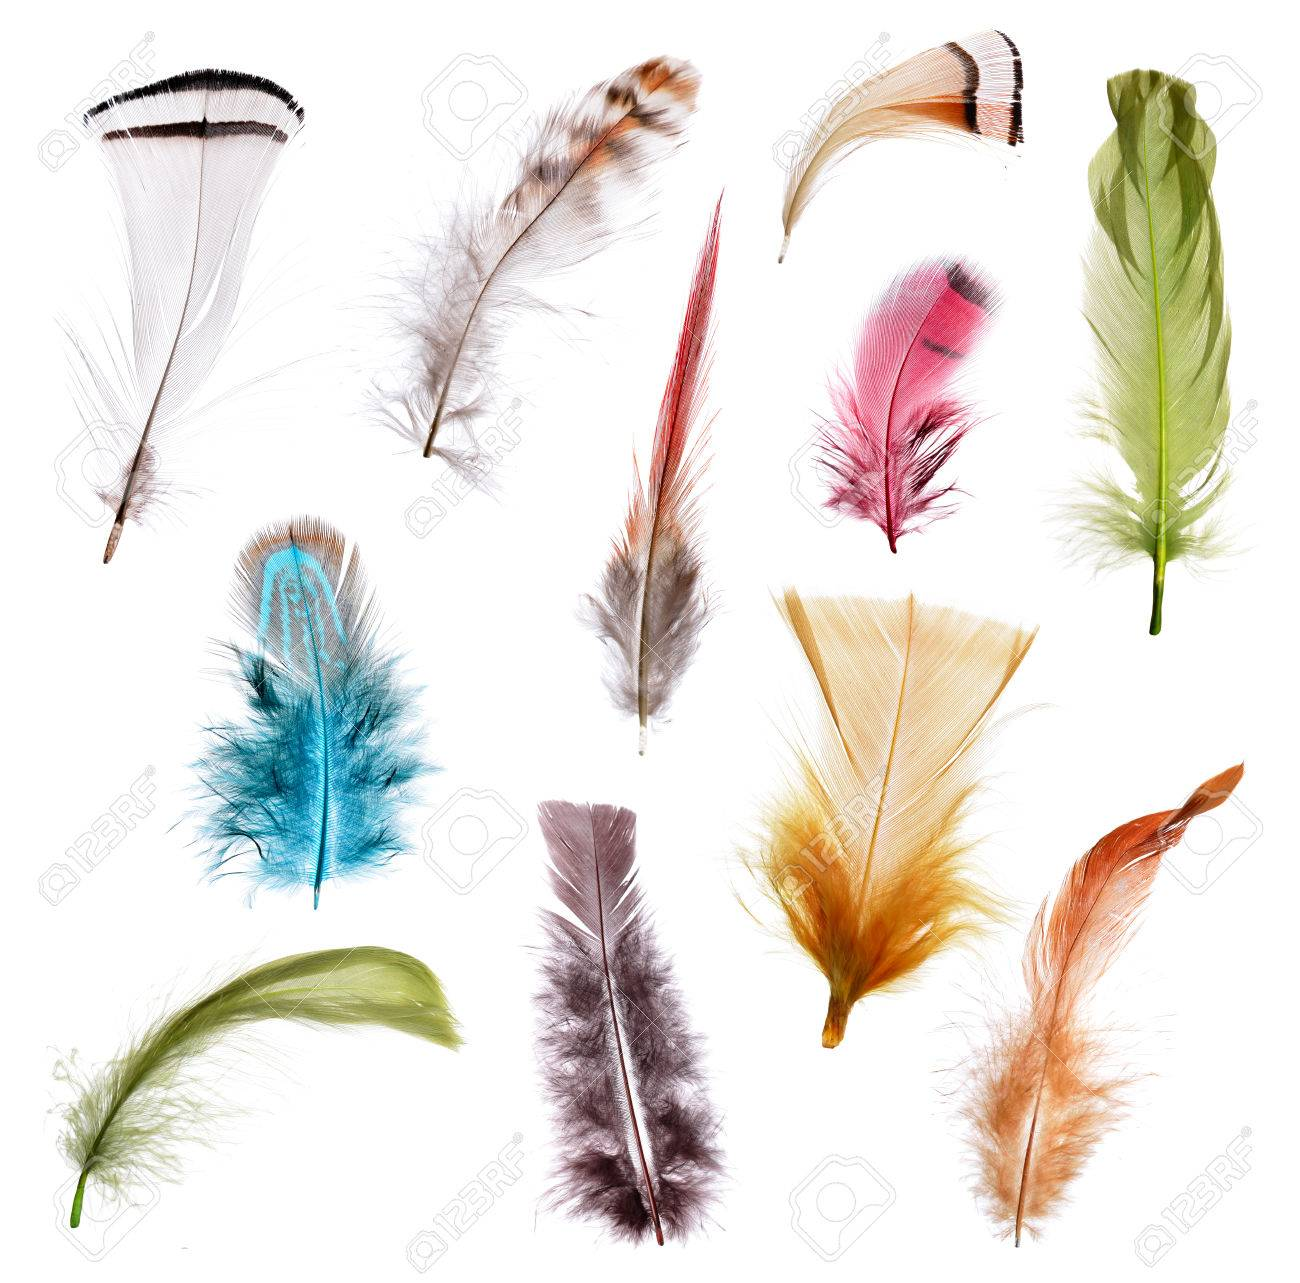 ostrich feathers stock photos u0026 pictures royalty free ostrich